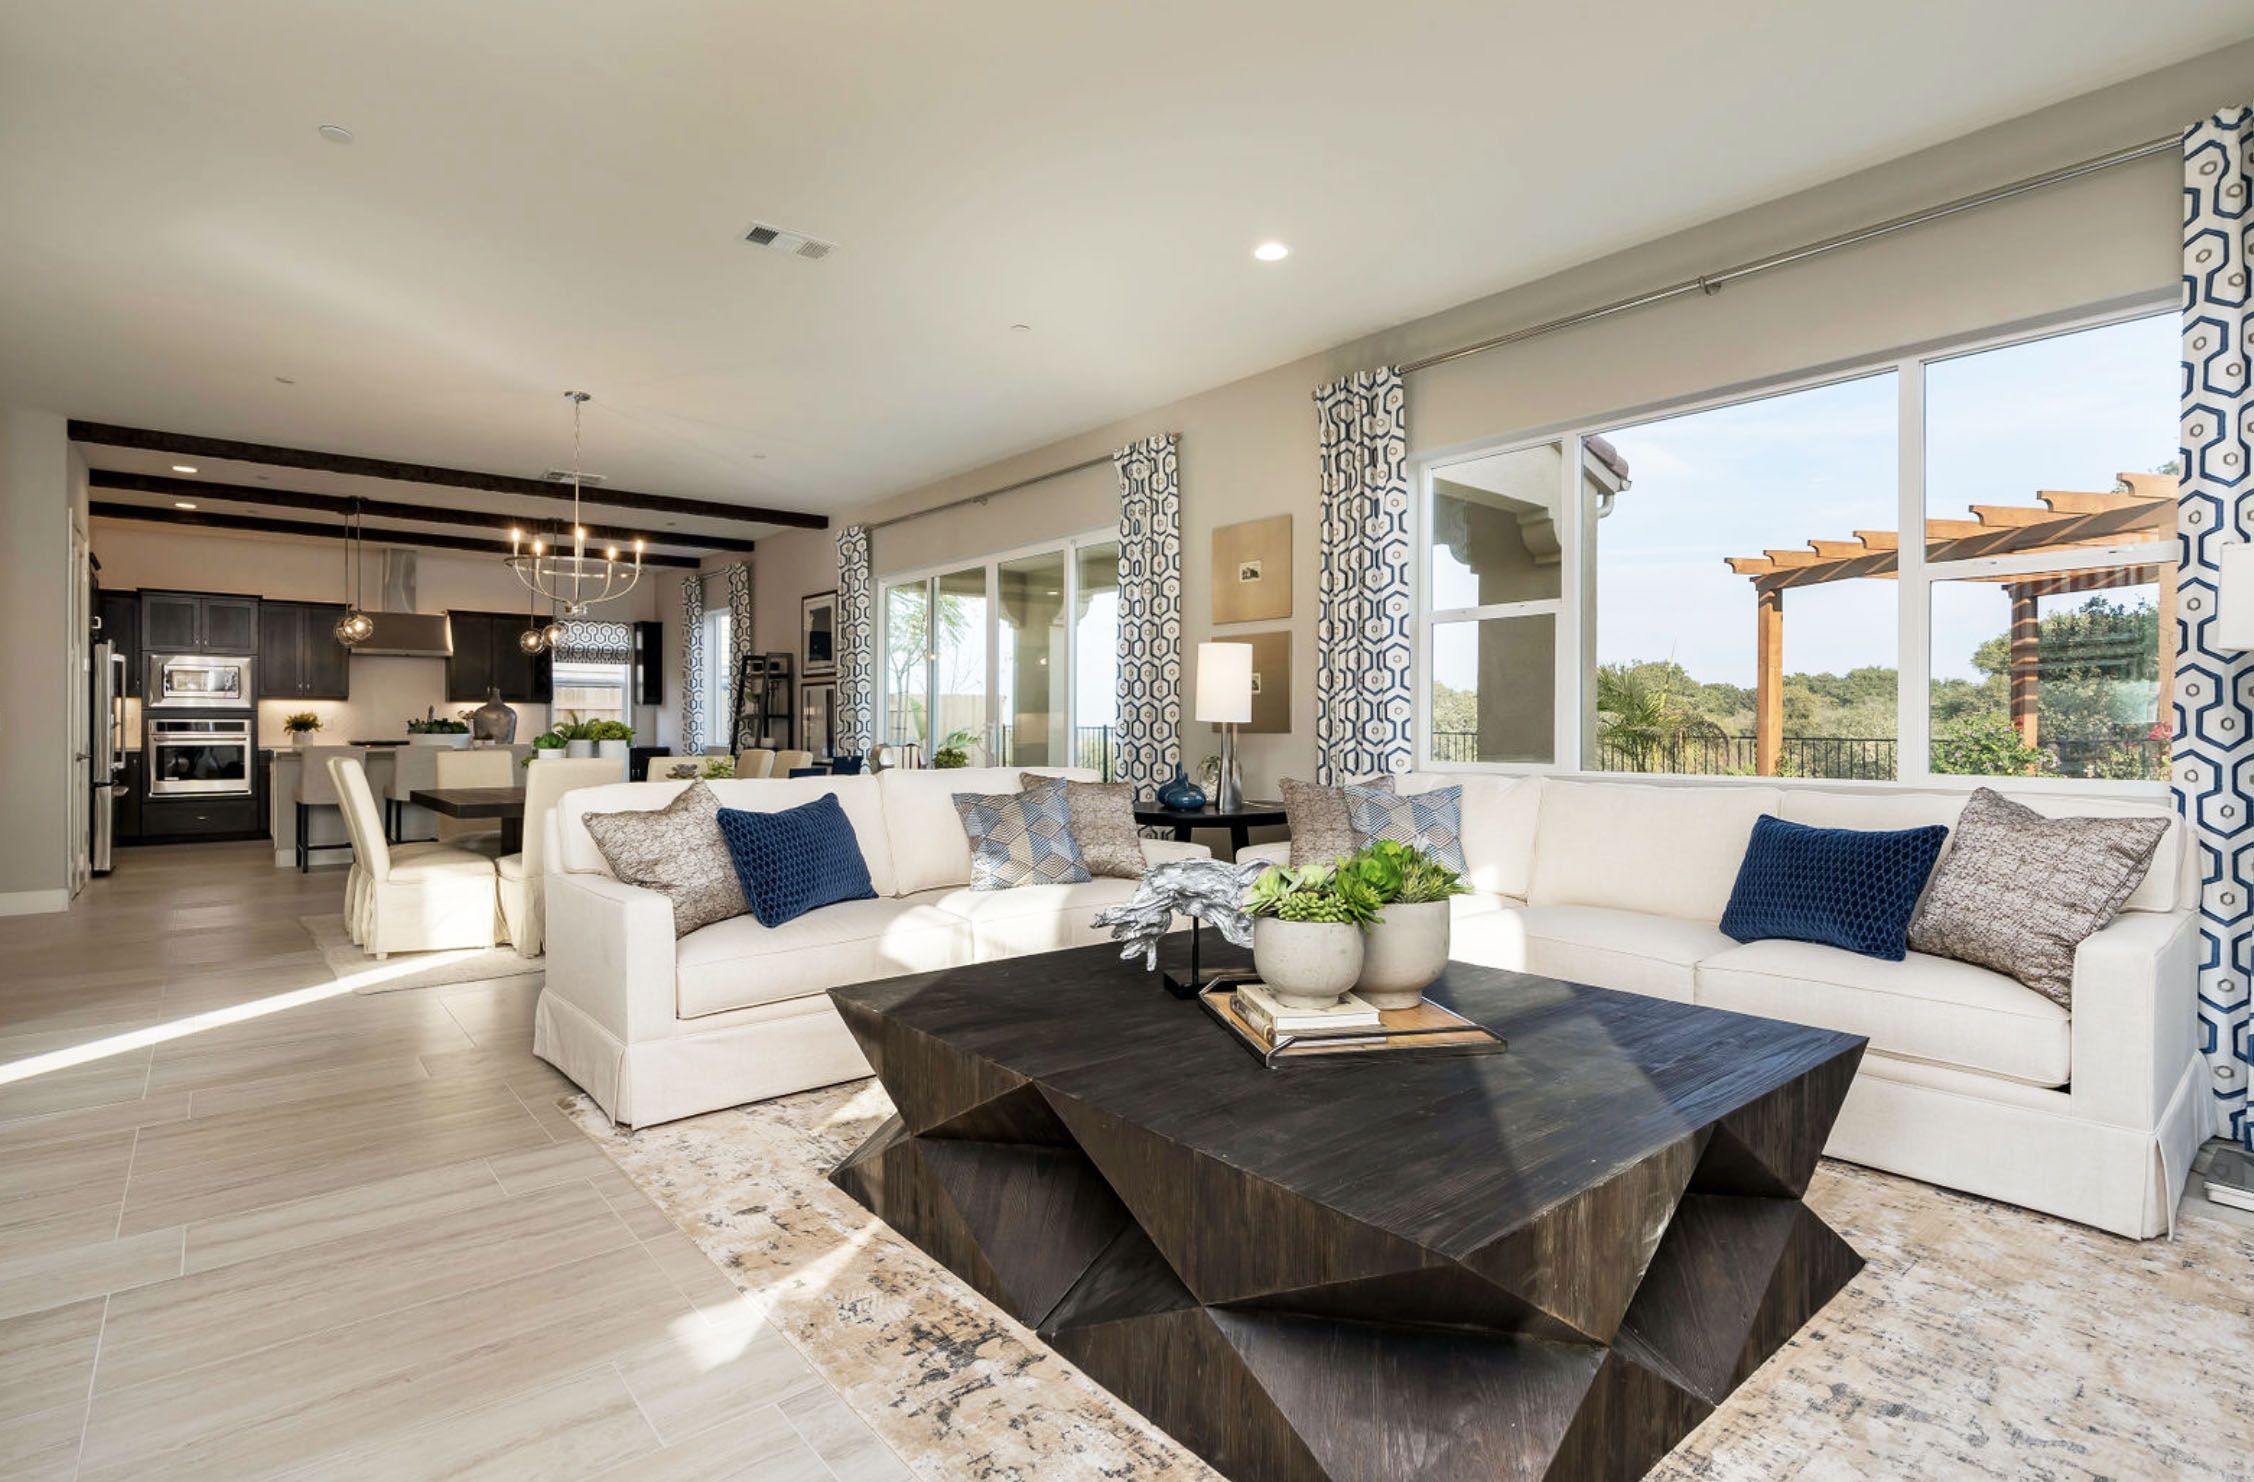 Living Area featured in the Windsor By Coastal Community Builders in Santa Barbara, CA